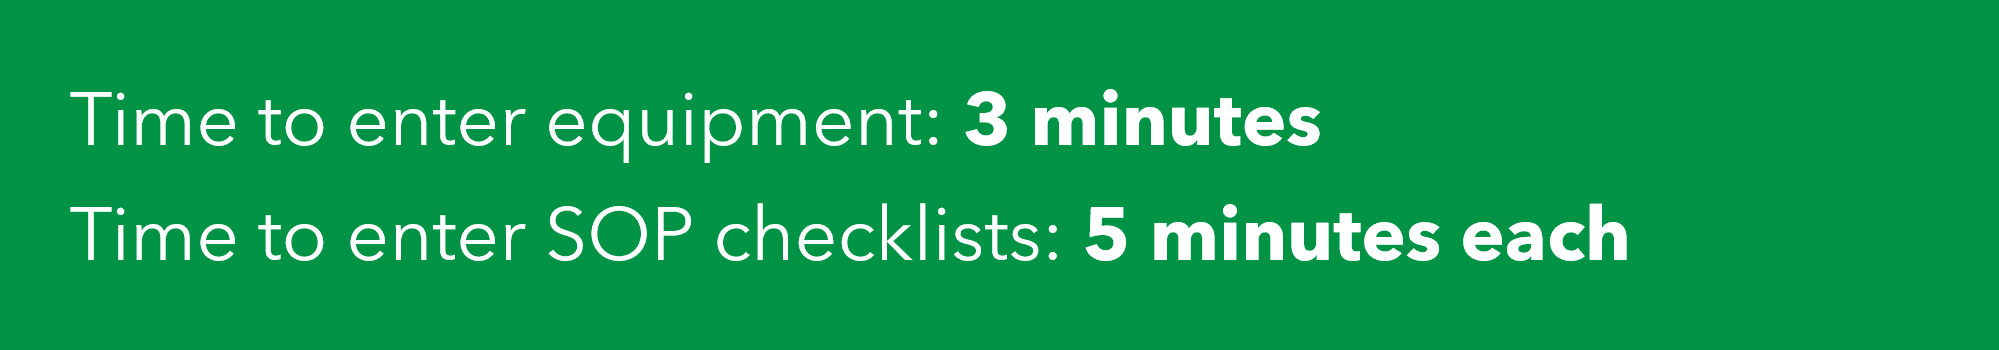 Standard operating procedure time investment: Time to enter equipment: 3 minutes. Time to enter SOP checklists: 5 minutes each.